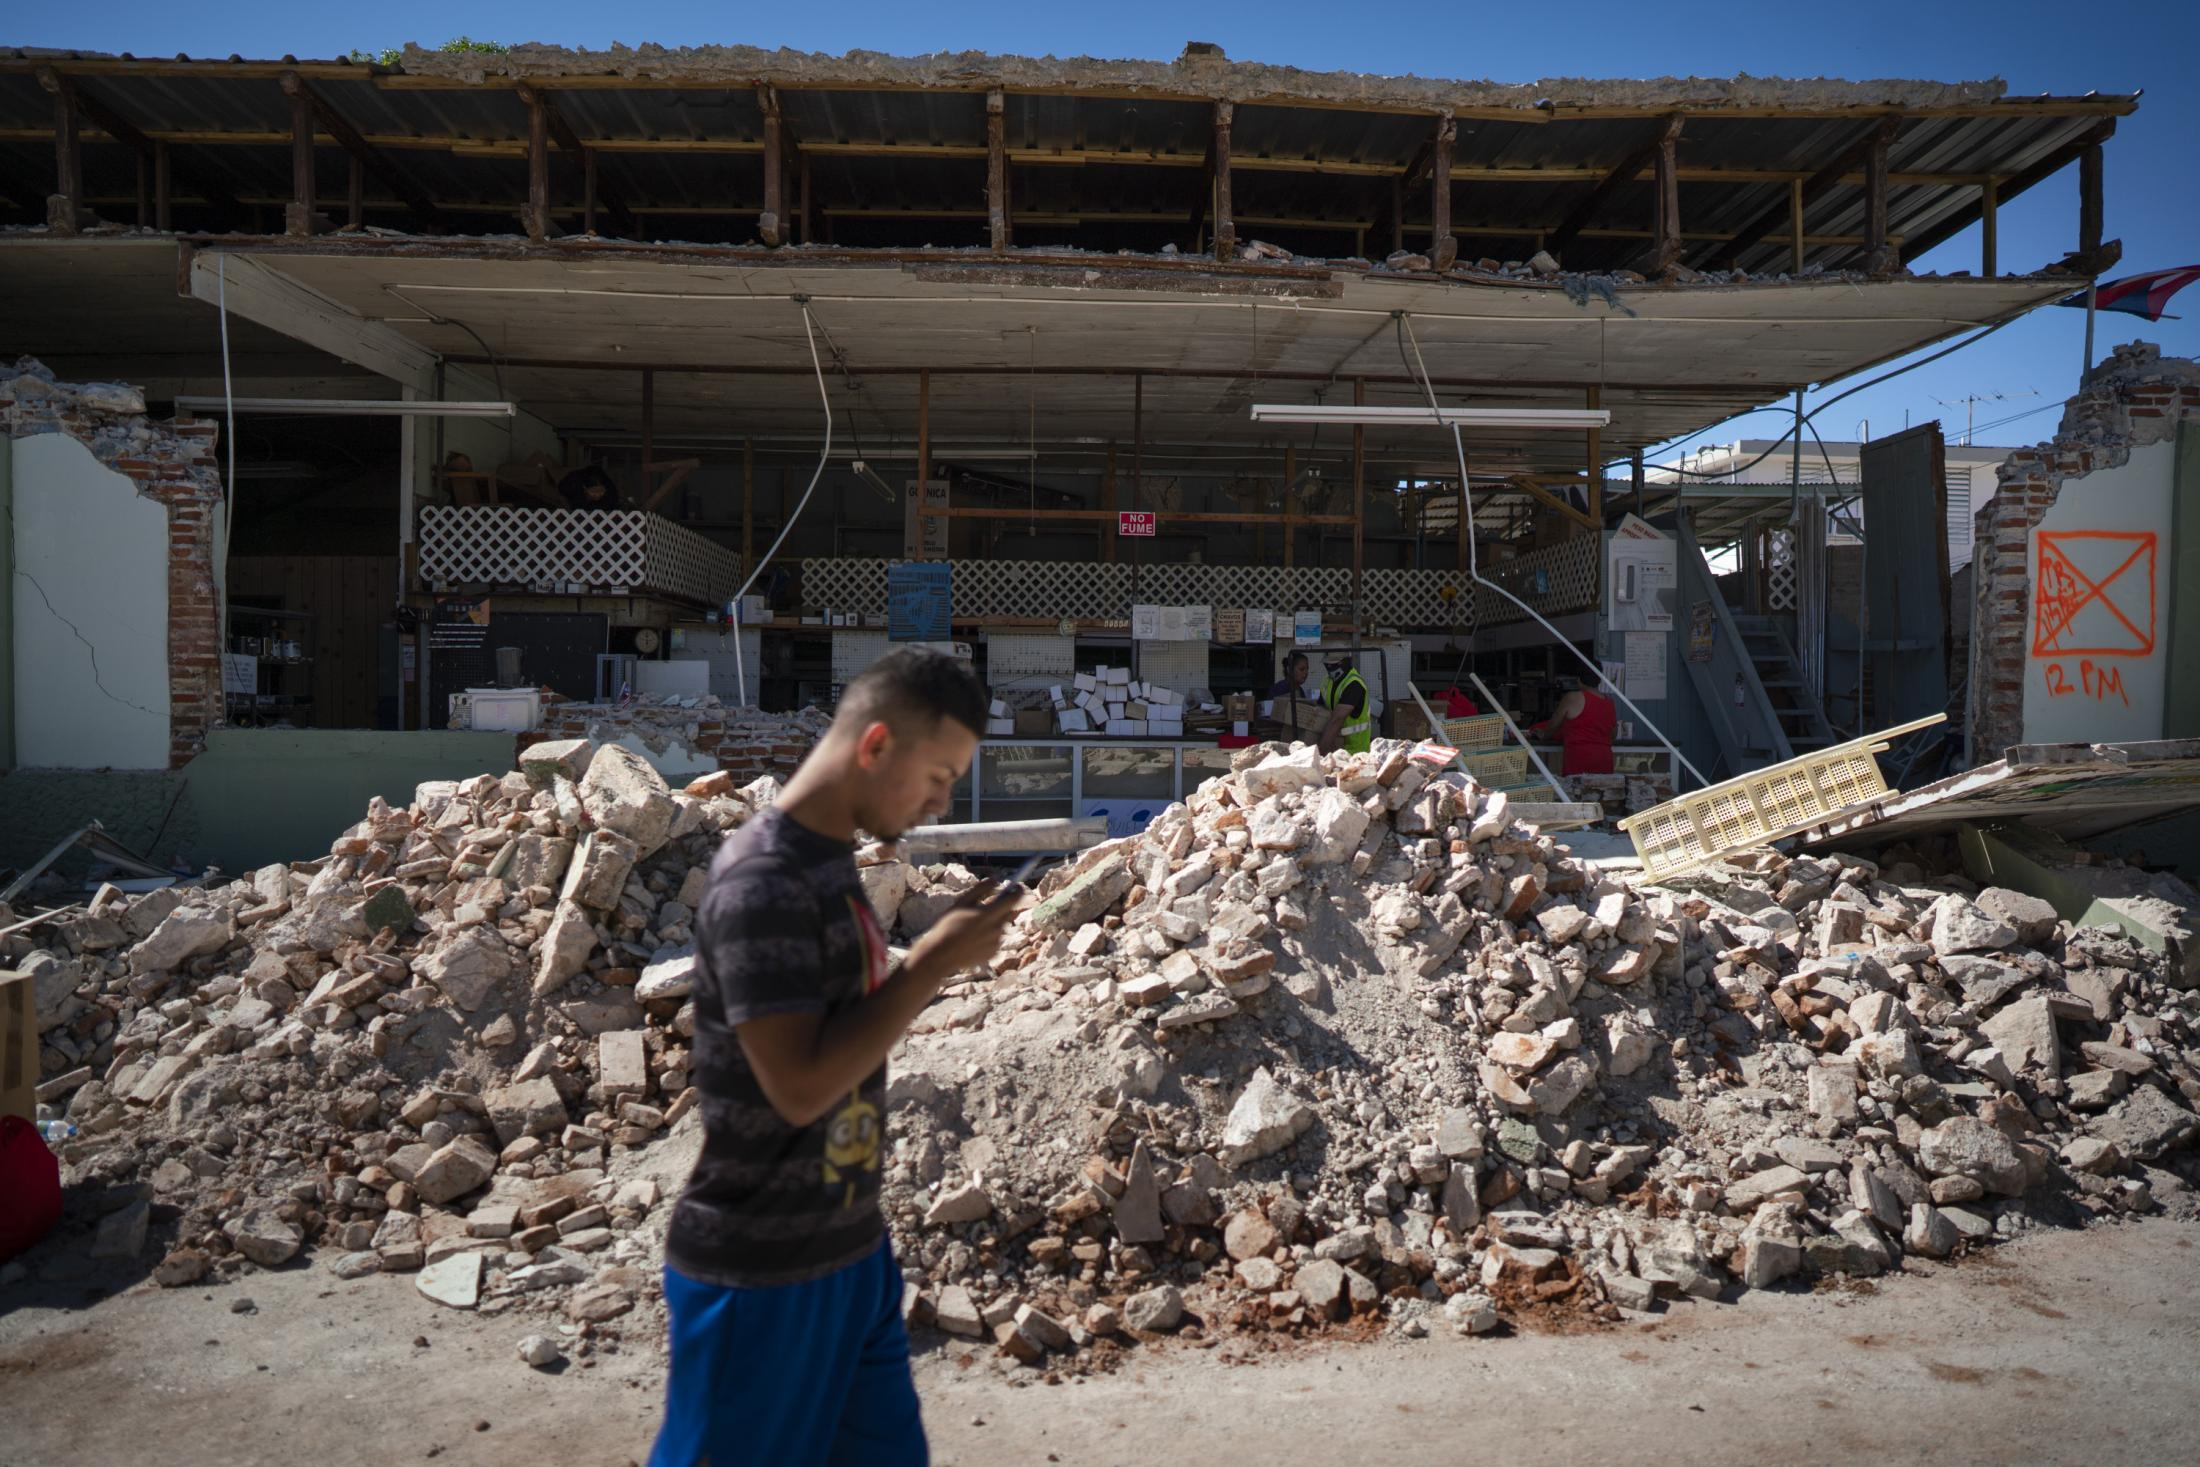 GUANICA, PUERTO RICO - JANUARY 7: People inspect damage and help to take out the merchandise of a local store in Guánica, Puerto Rico after a 6.4 earthquake hit just south of the island January 7, 2020. This morning's earthquake was preceded by a series of smaller quakes in the south of the island with epicentric in Guánica. (Photo by Eric Rojas/Getty Images)